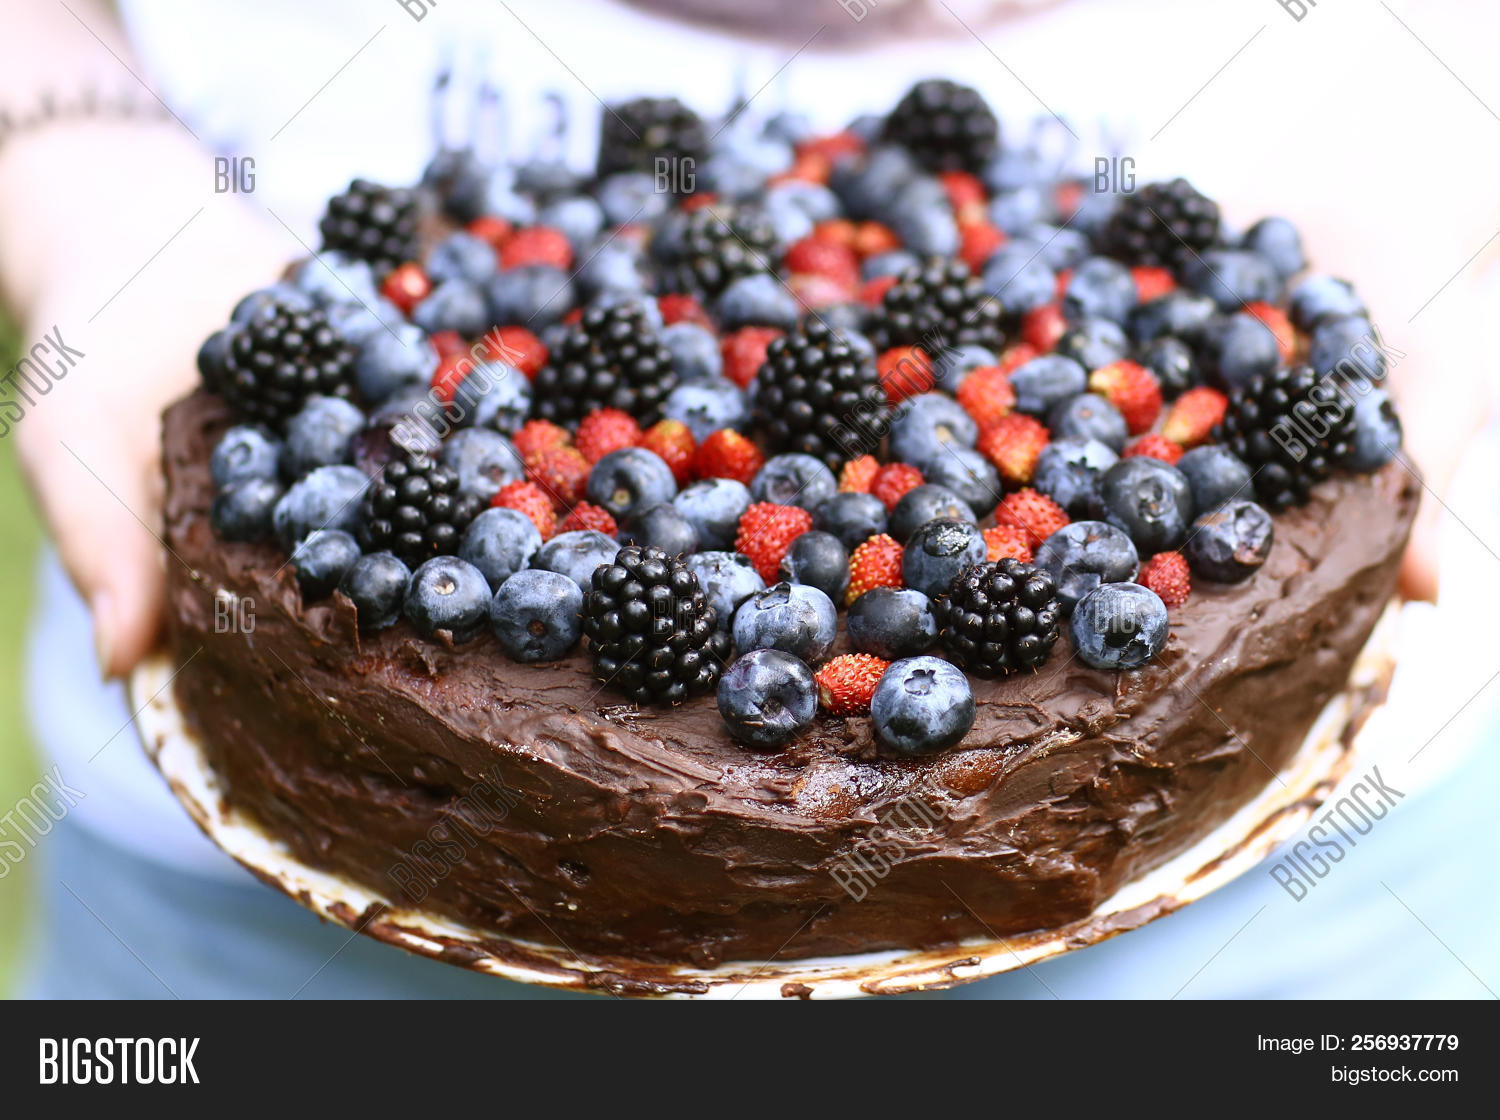 Magnificent Birthday Cake 17 Year Image Photo Free Trial Bigstock Birthday Cards Printable Inklcafe Filternl